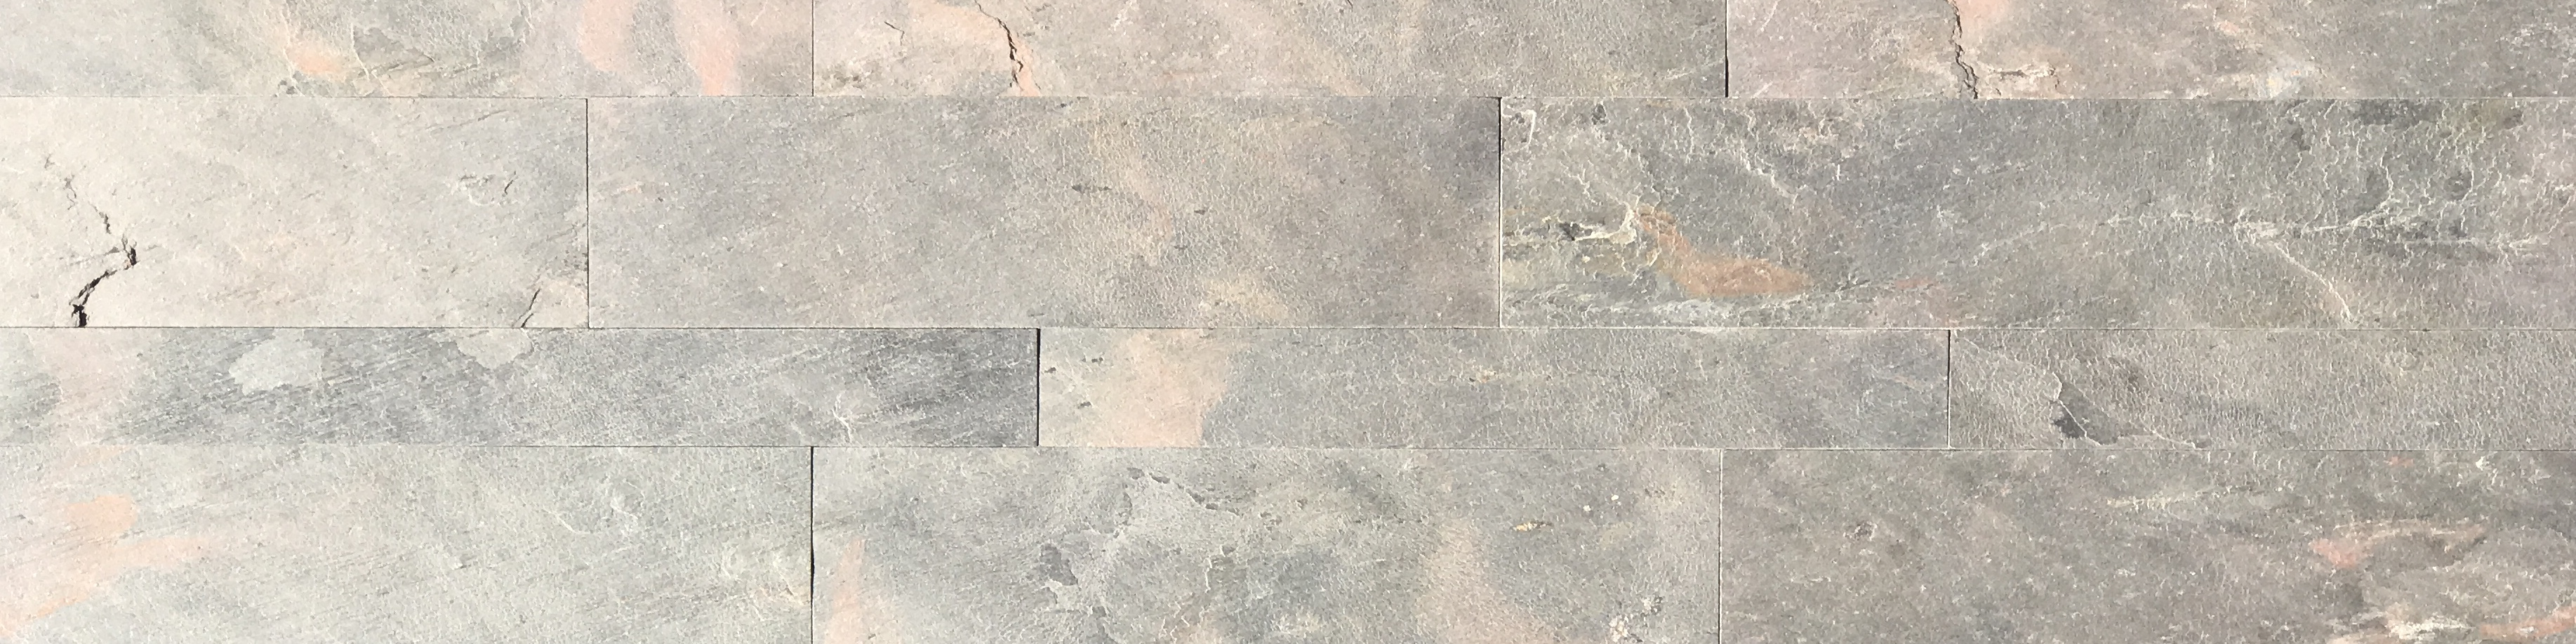 Spice Craft Slimline Ledgestone Panel Image